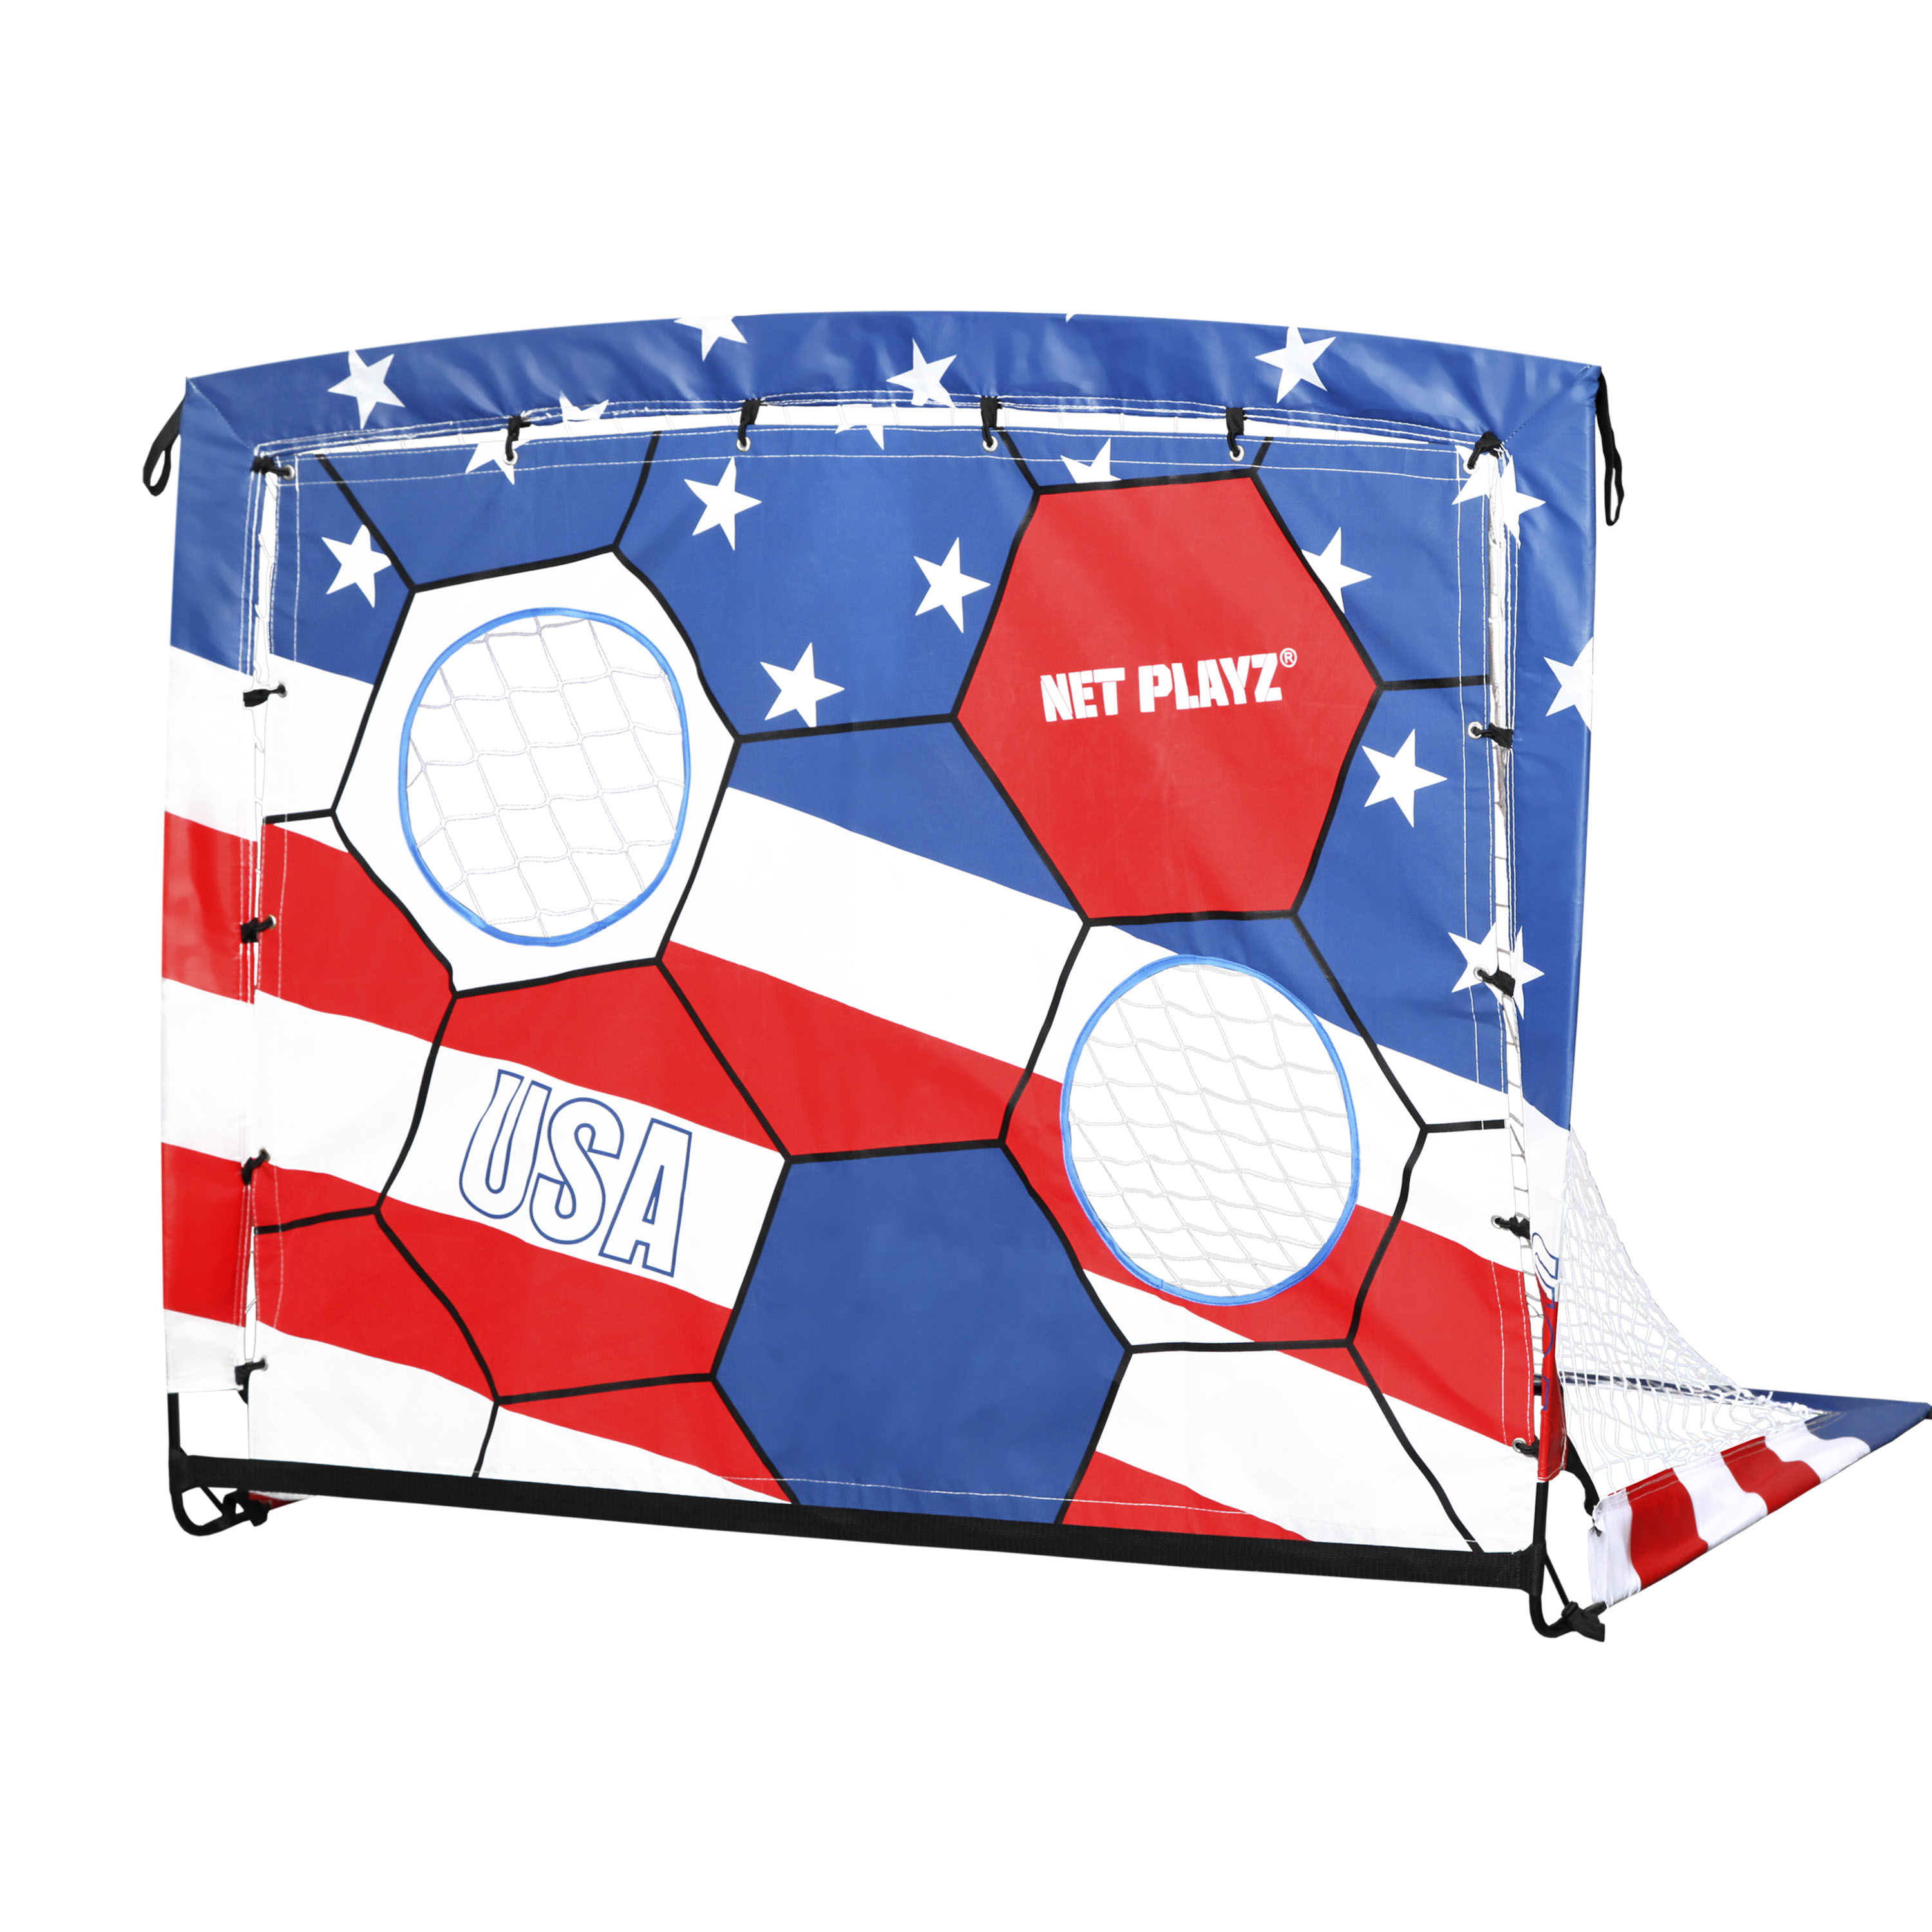 Net Playz 4 x 3 2 In 1 Portable Easy Fold-Up Training Soccer Goal (Carry Bag Included)